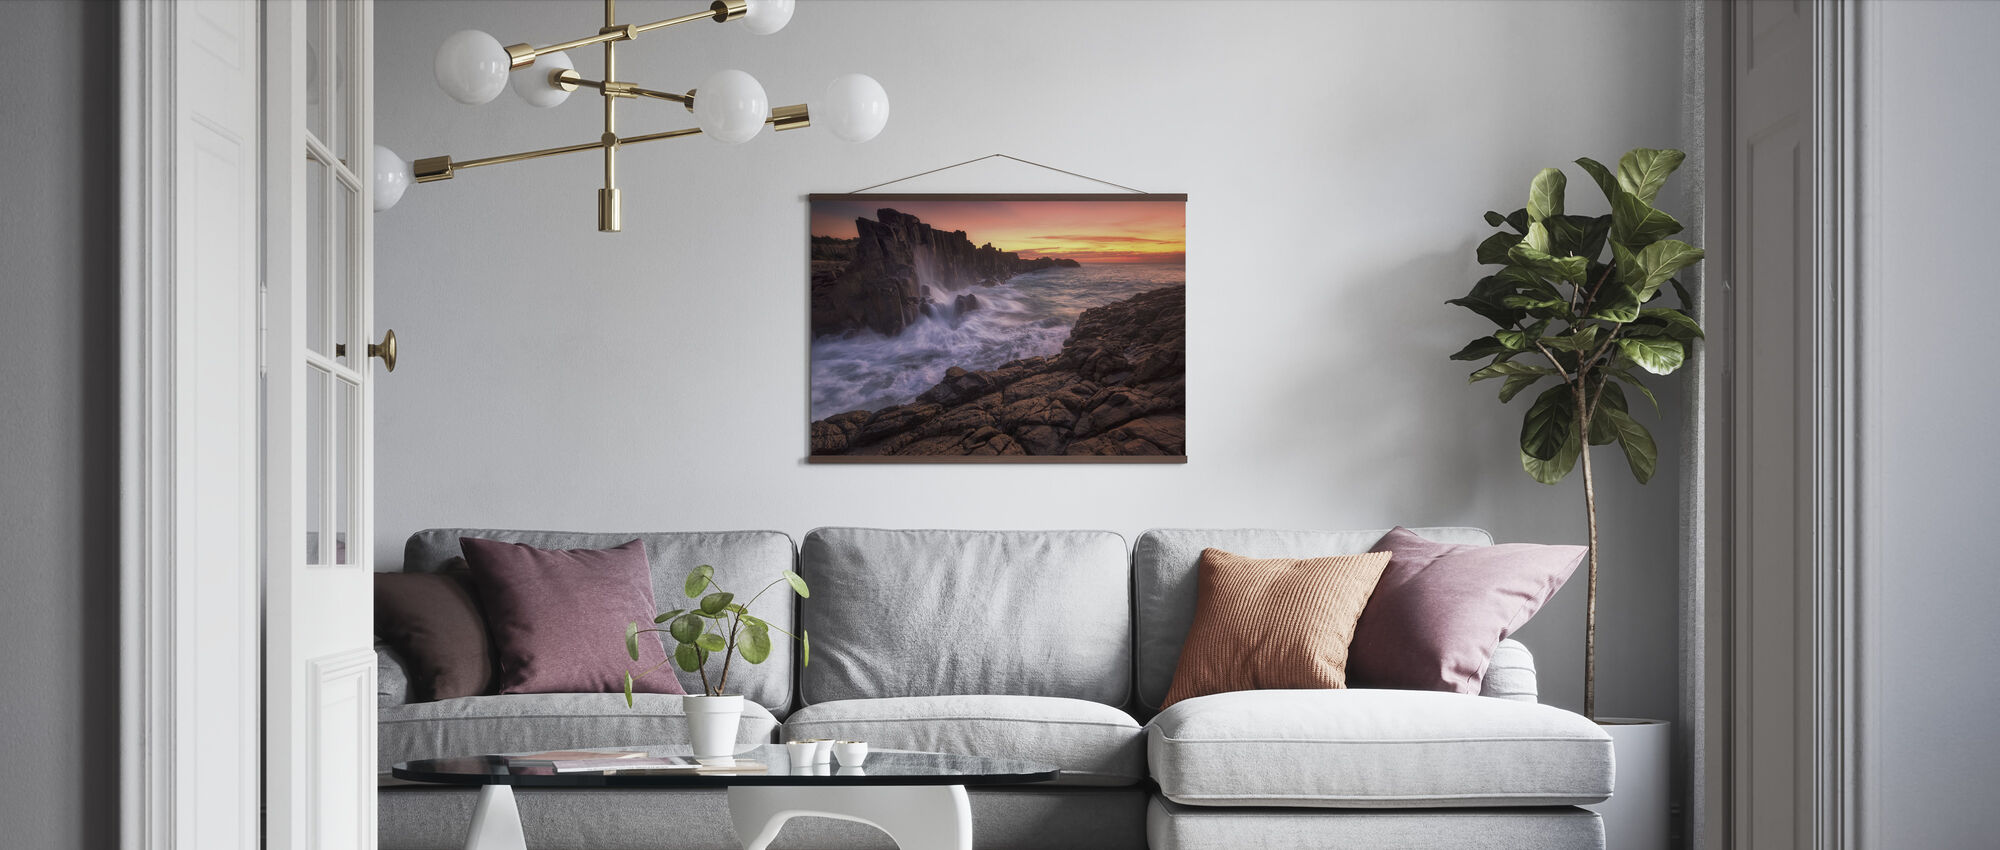 Wall by the Sea - Poster - Living Room